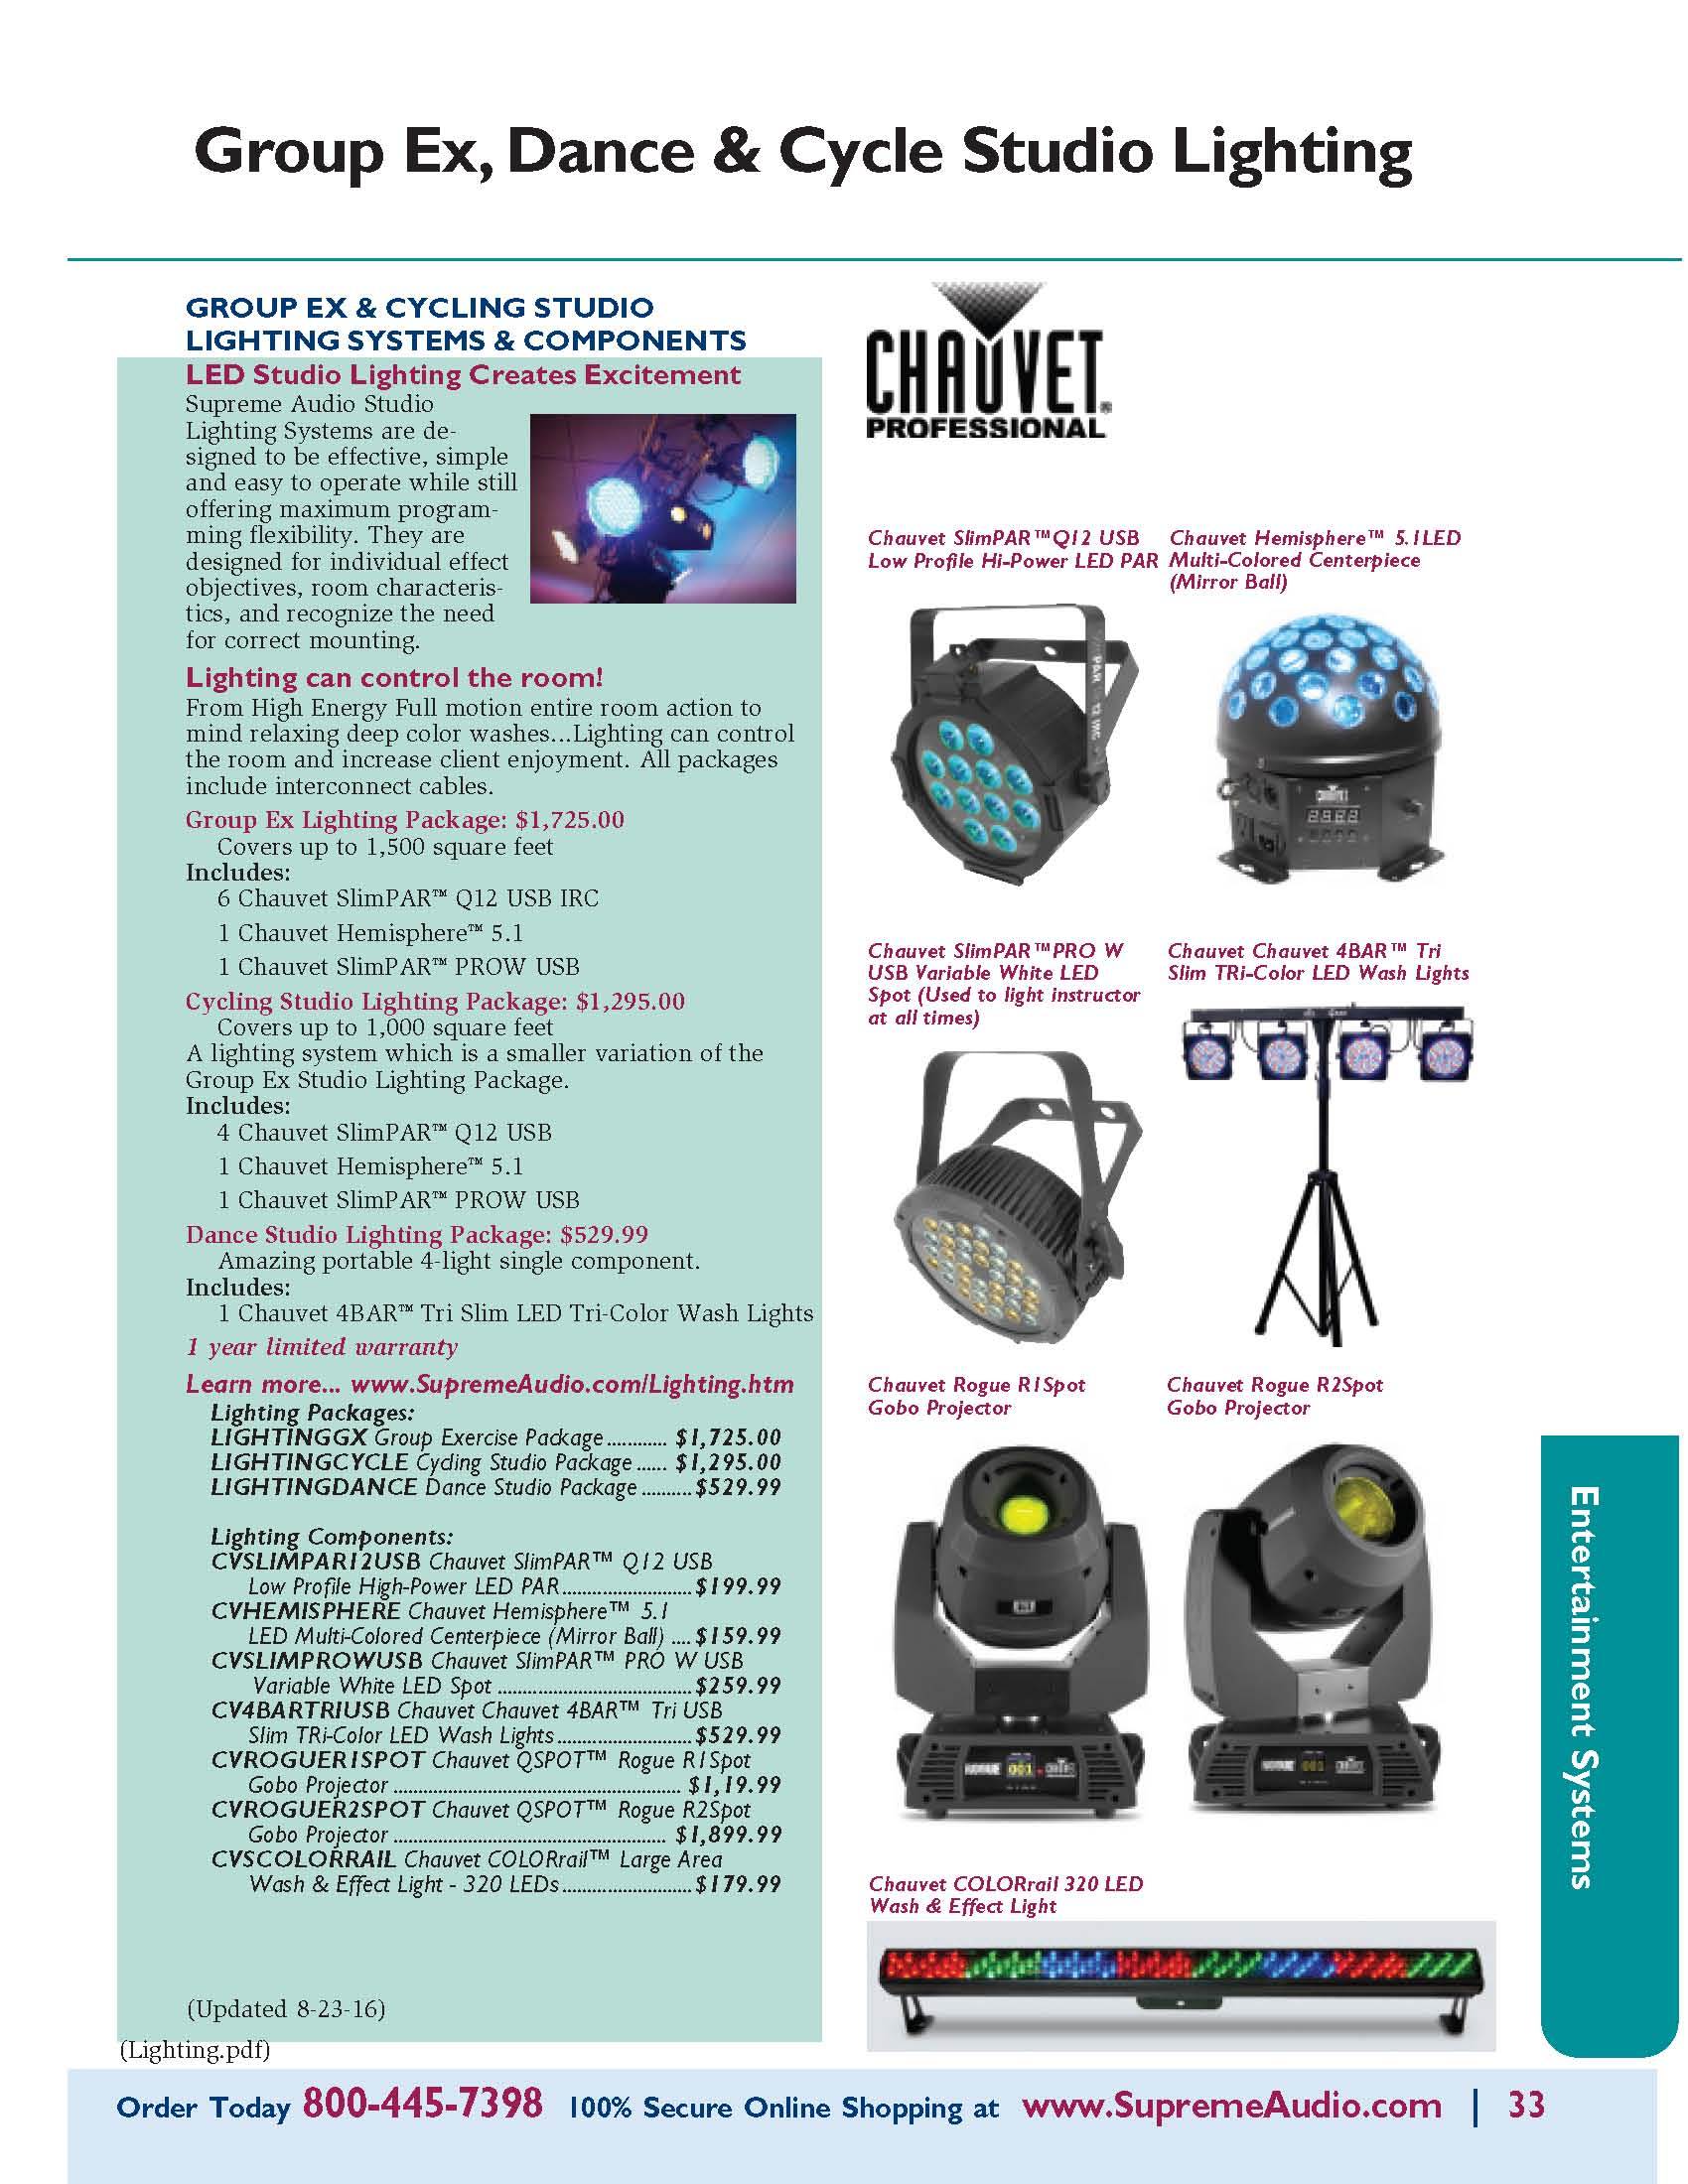 Group X, Dance & Cycle Studio Lighting Catalog Page